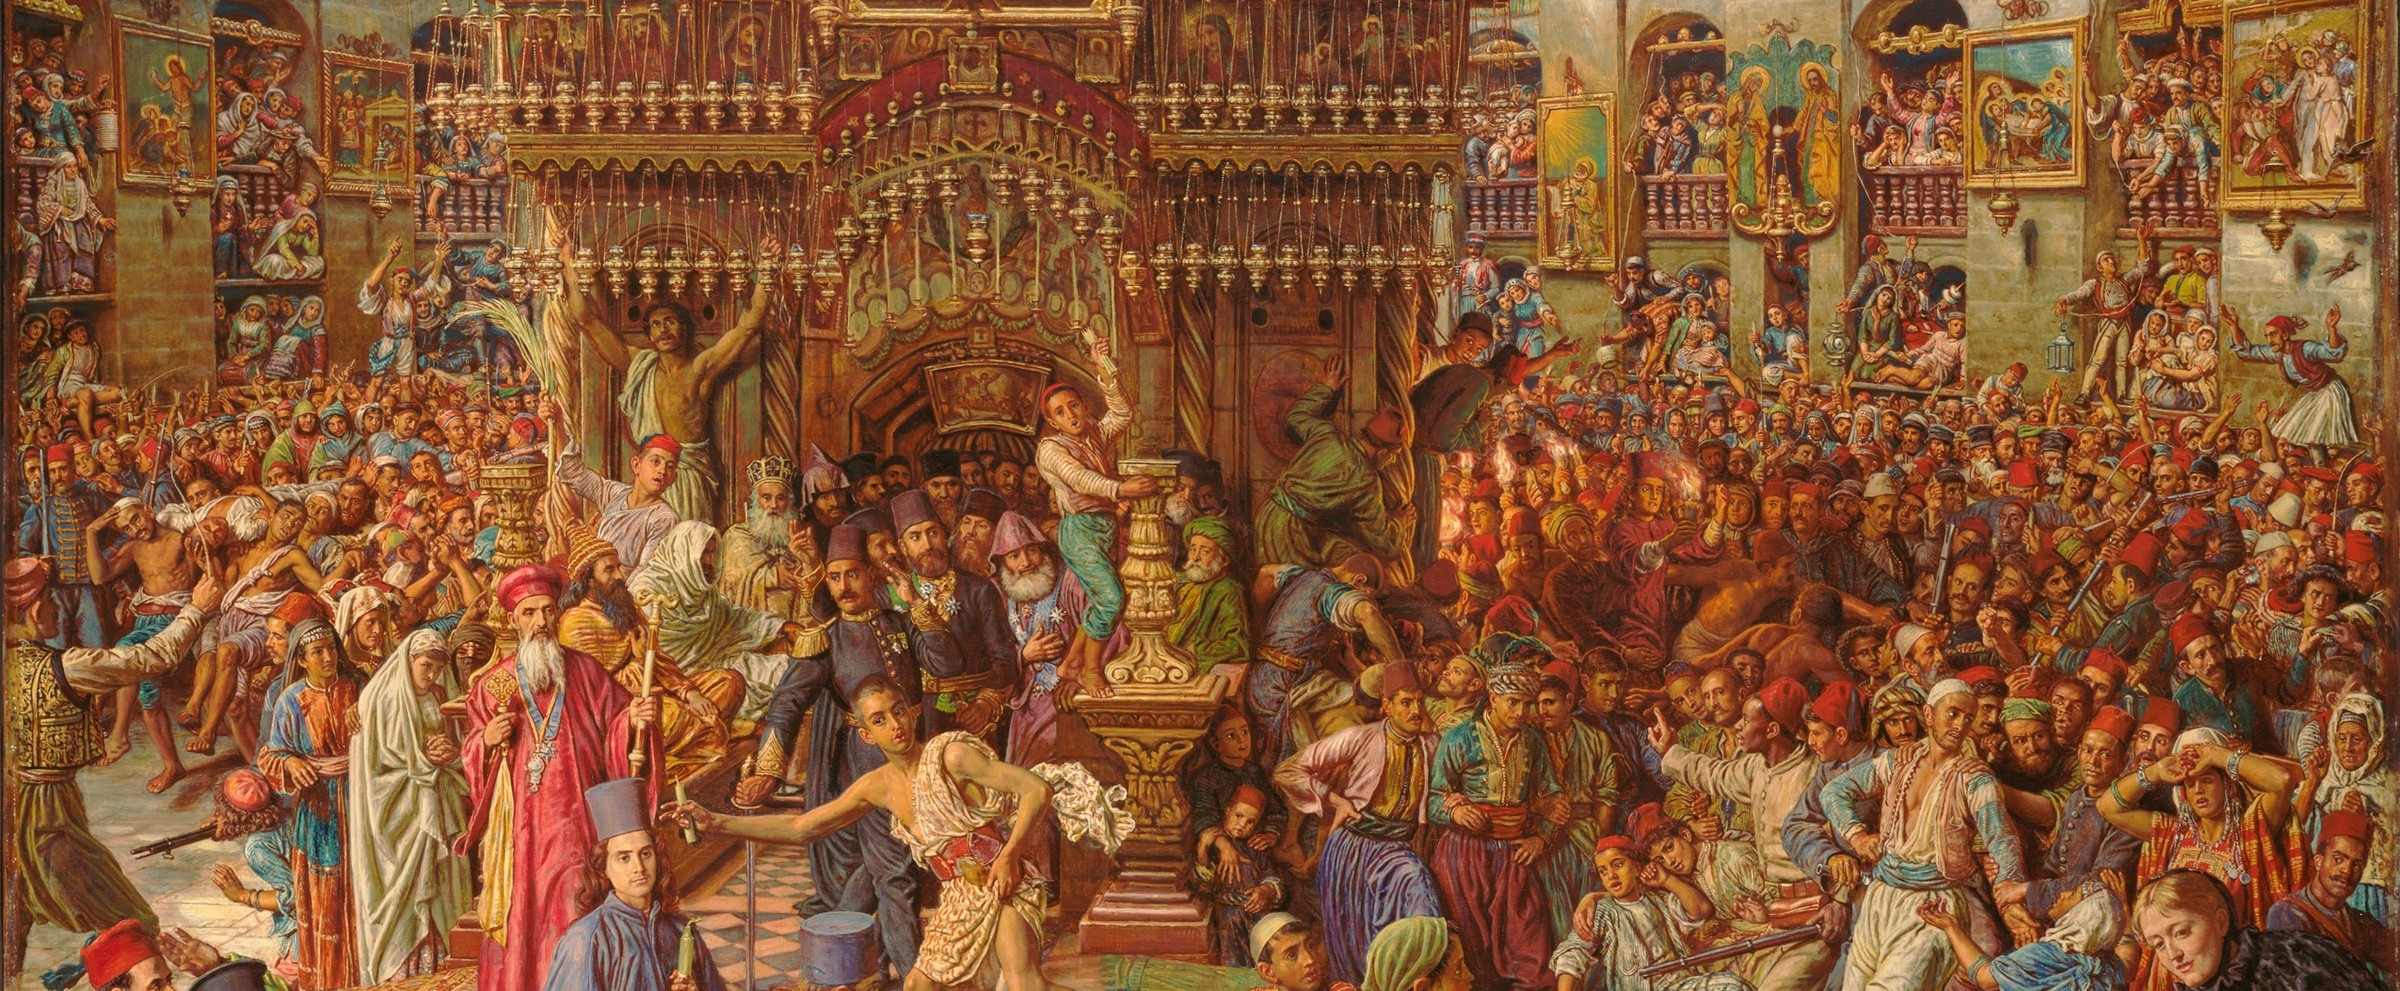 William Holman Hunt.  The Miracle of the Sacred Fire, Church of the Holy Sepulchre  (detail). 1892–1899. Oil and resin on canvas. Harvard Art Museums/Fogg Museum, Gift of Grenville L. Winthrop, Class of 1886 (1942.198)